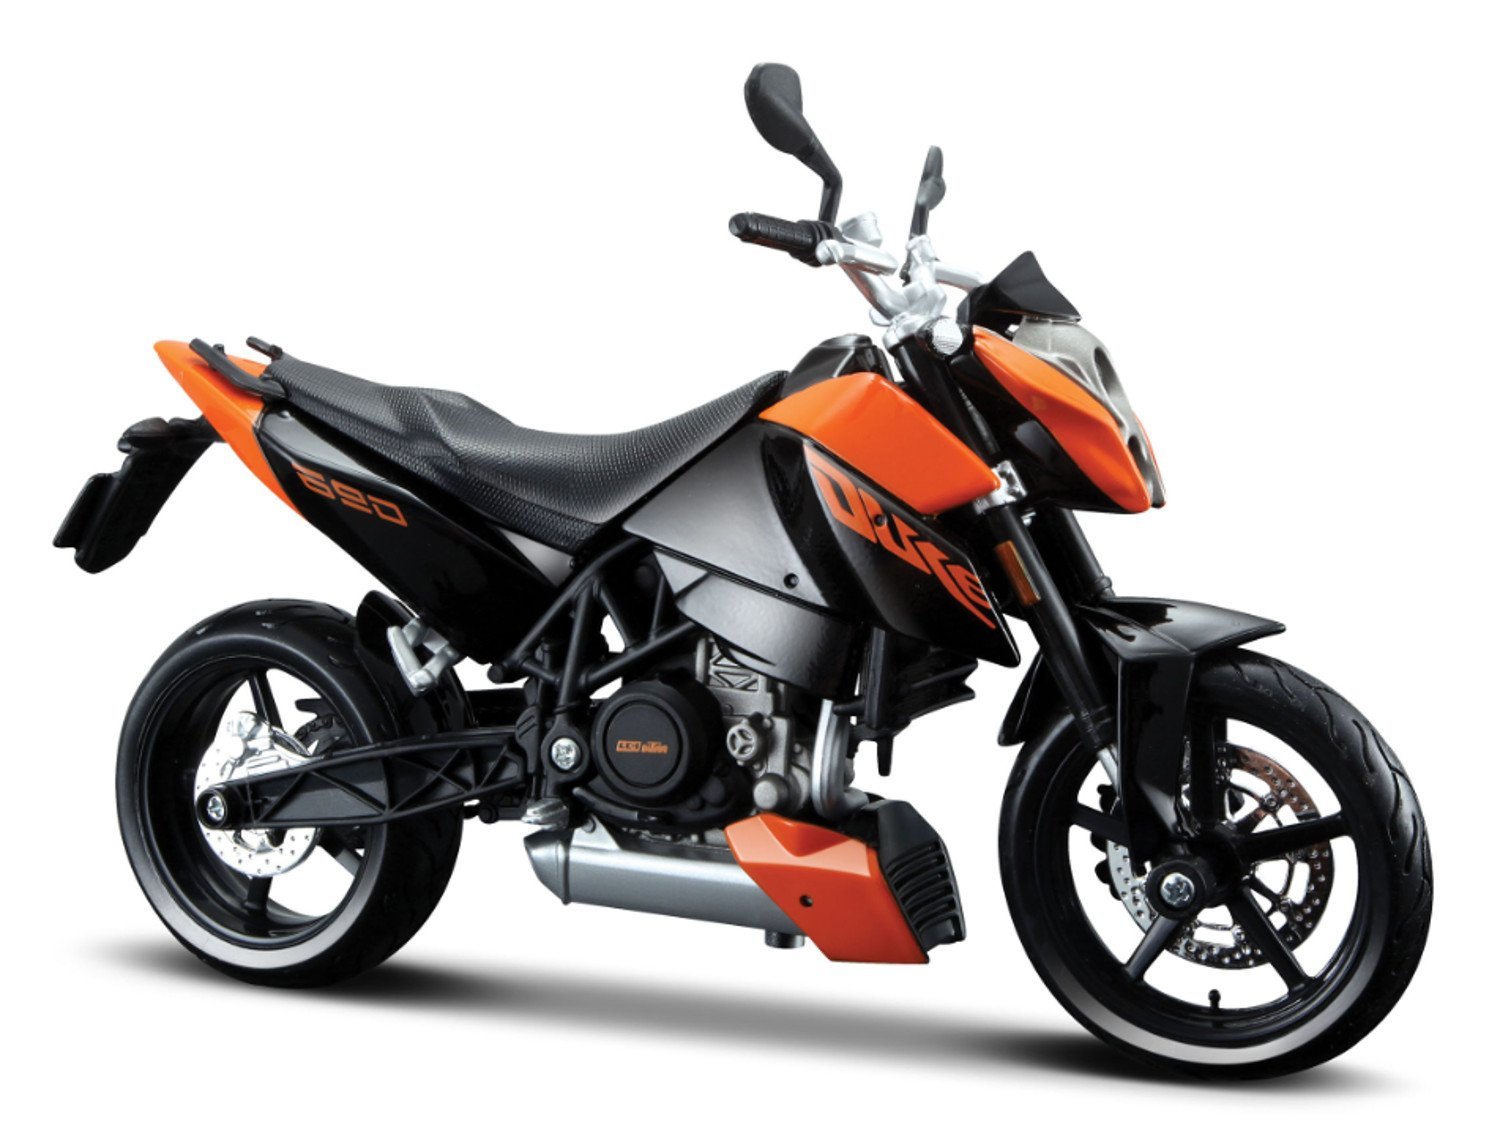 Buy maisto 112 ktm 690 duke black orange online at low prices in india amazon in